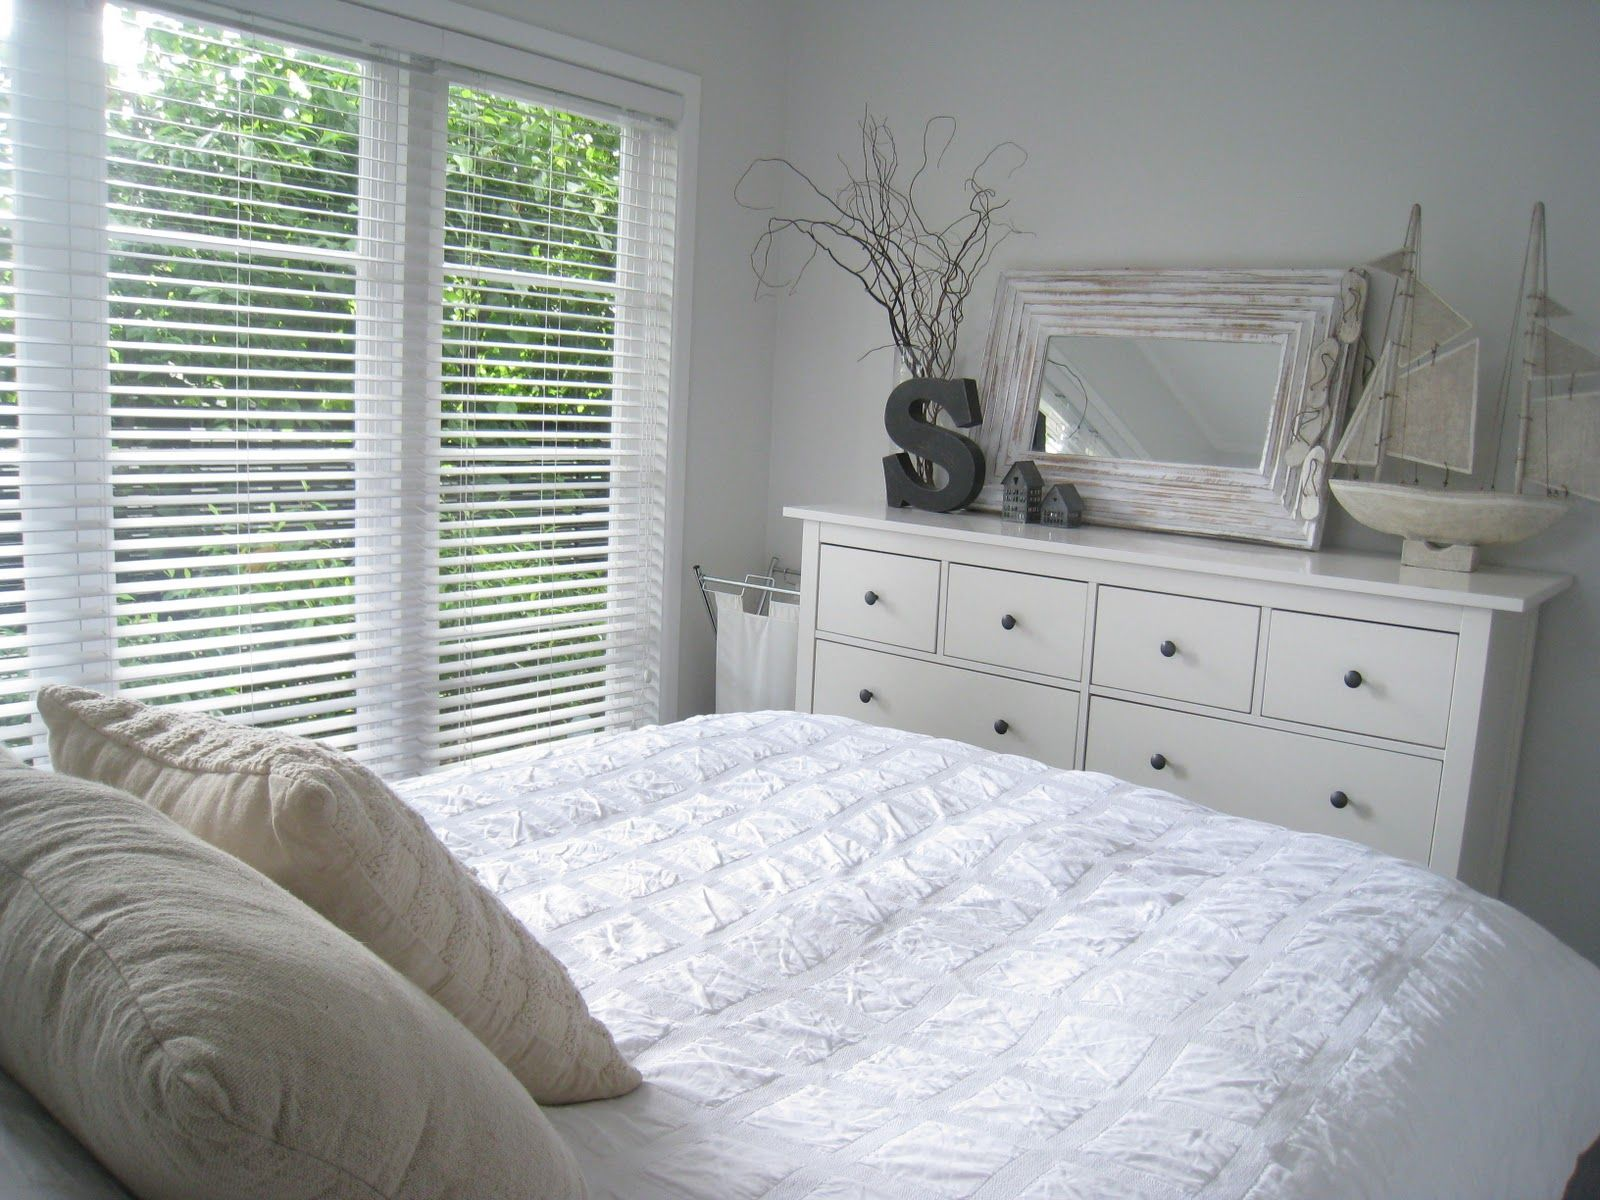 ikea hemnes bed white Google Search Habitación ikea